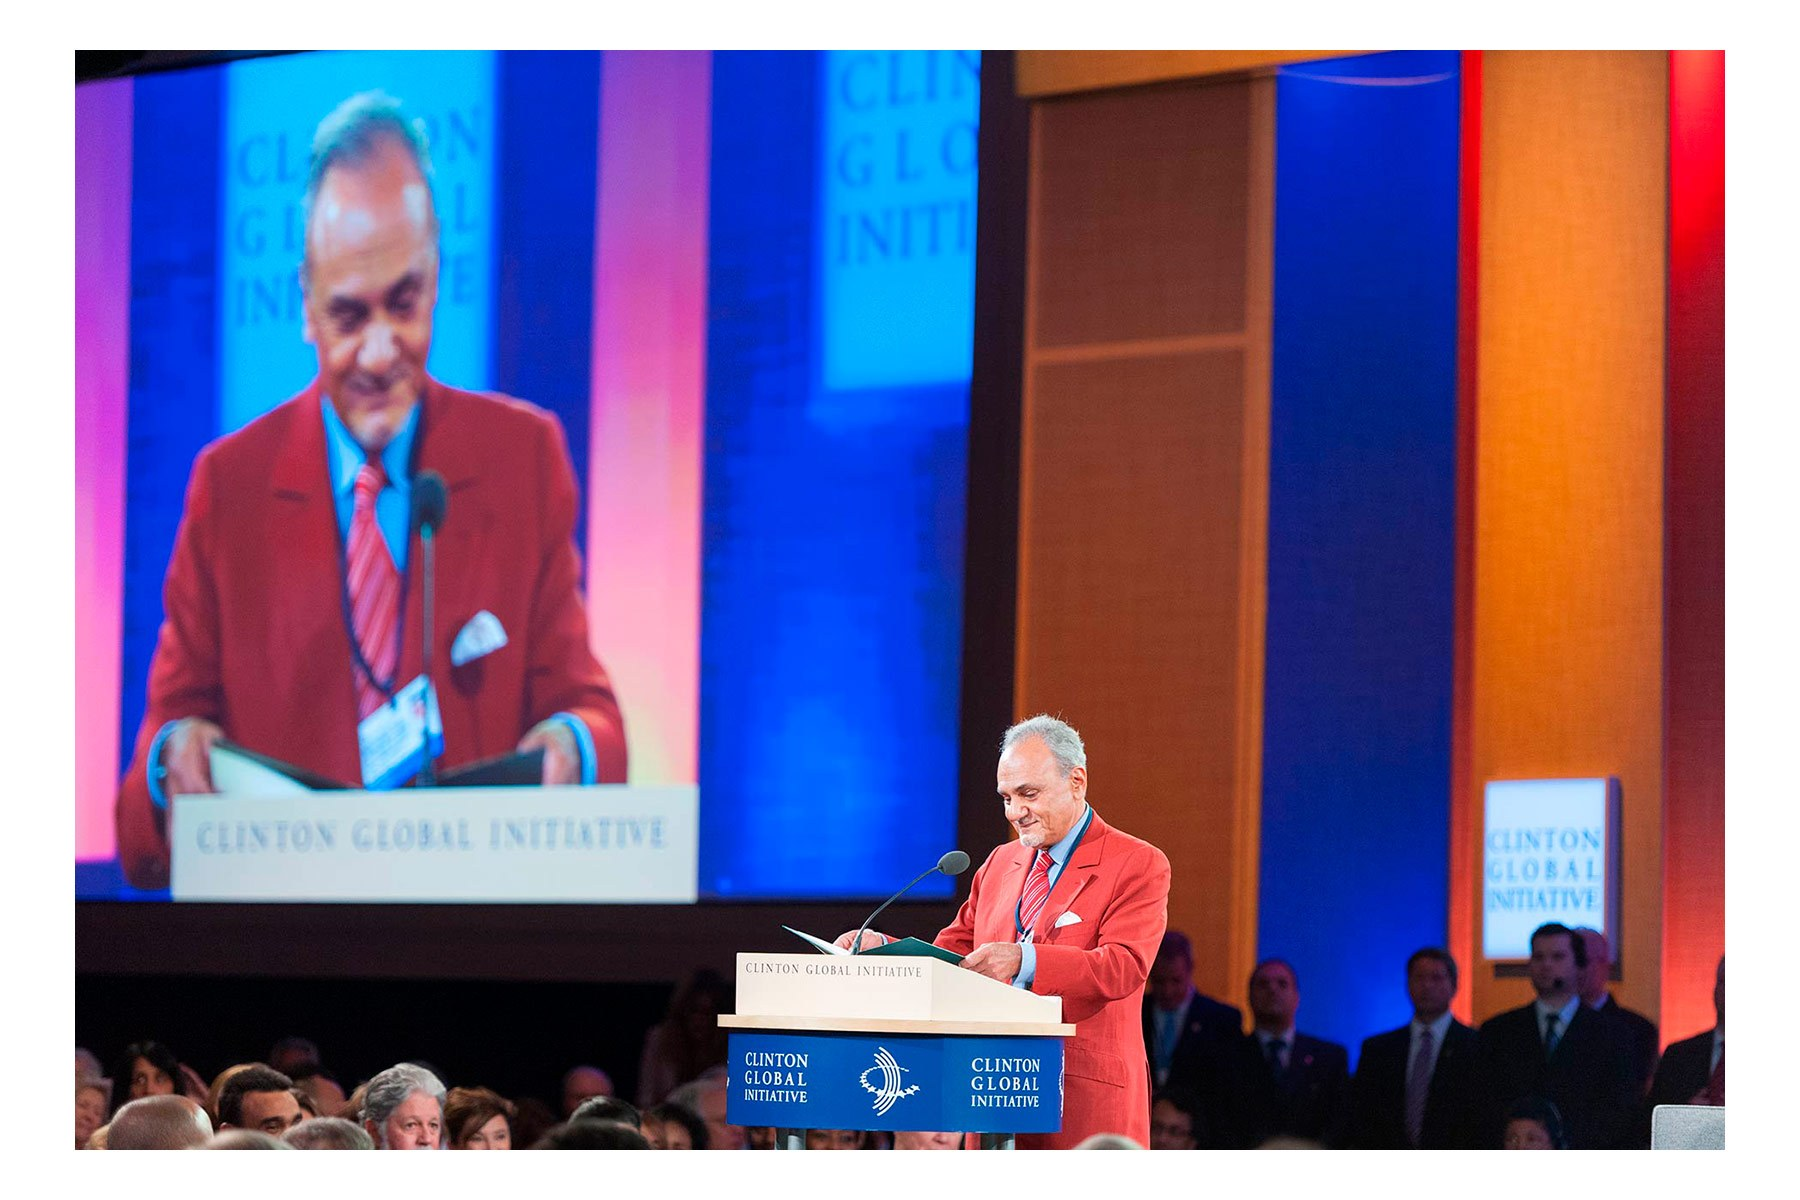 Prince Turki Al Faisal, Saud Saudi Arabia, Closing Plenary, Clinton Global Initiative, CGI 2012 meetings, Designing for Impact, New York, September 2012